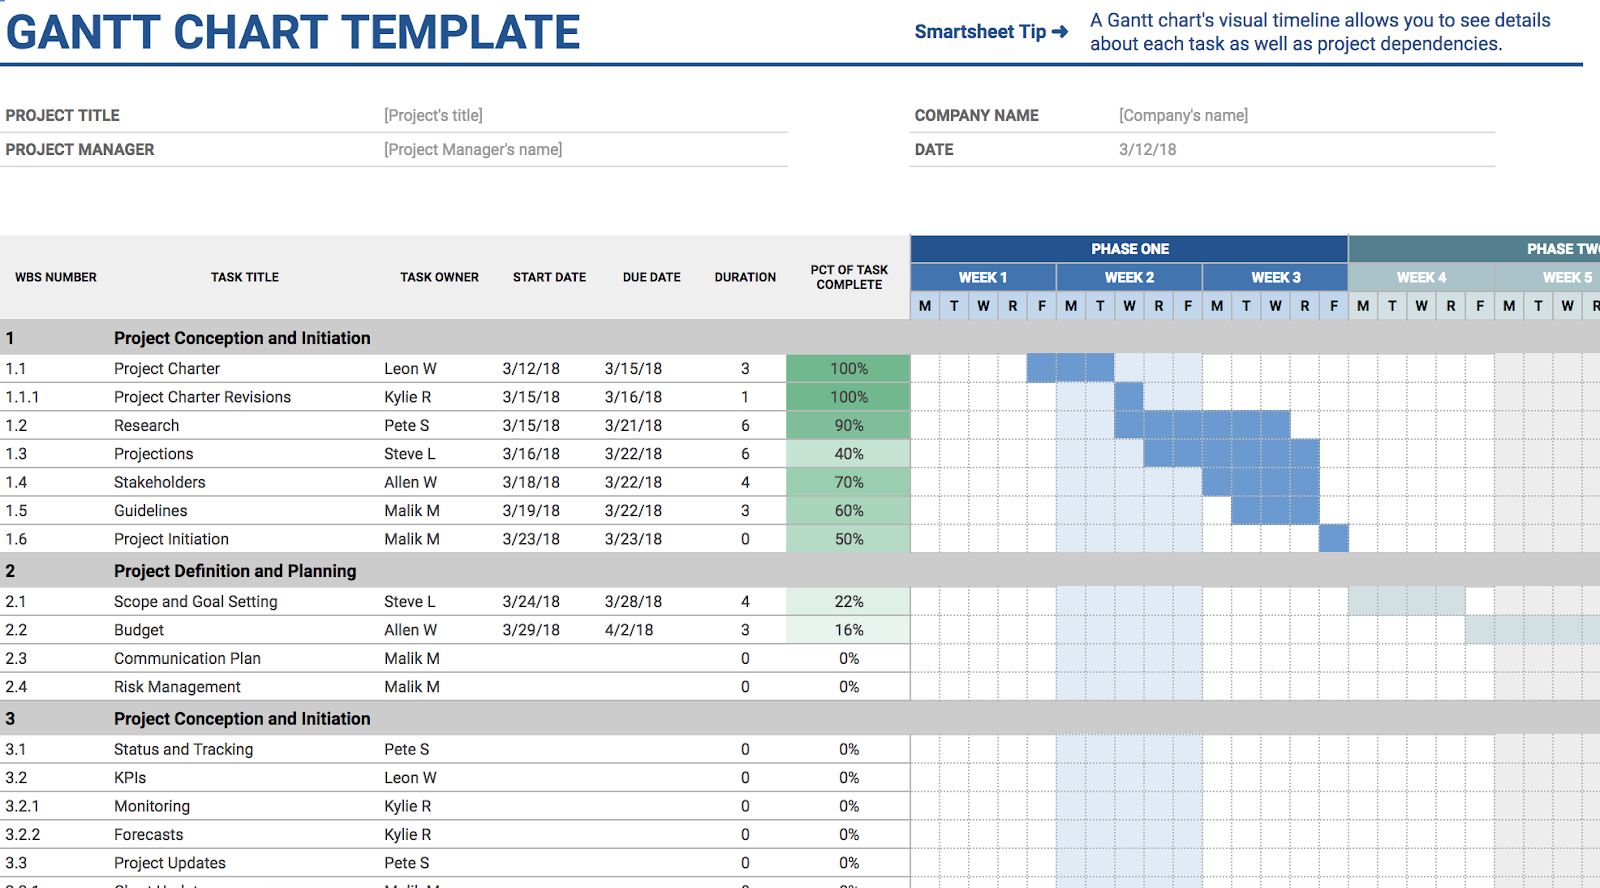 employee schedule template google sheets  11 of the Best Free Google Sheets Templates for 2019 - employee schedule template google sheets